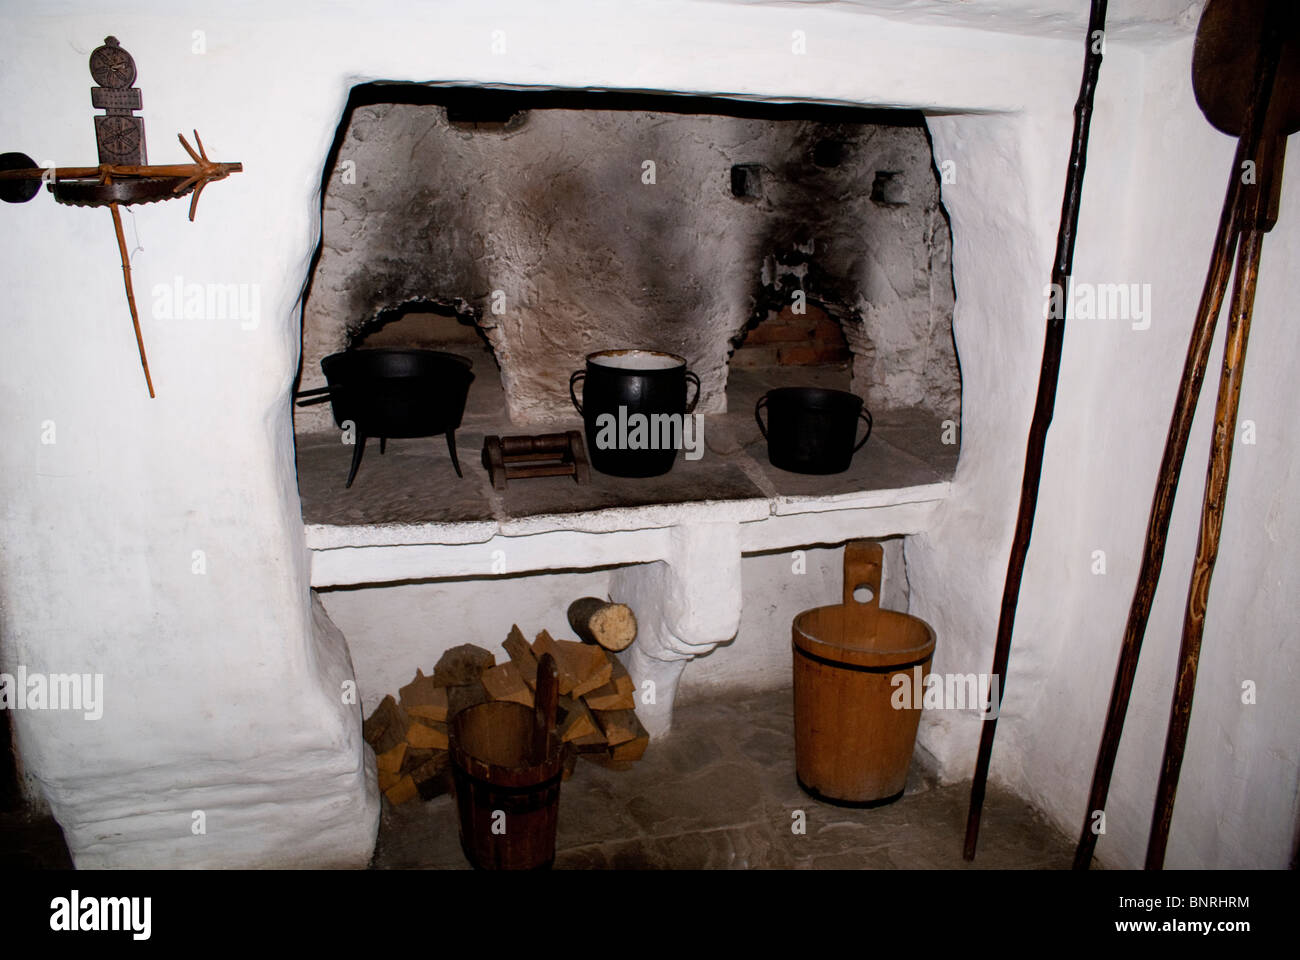 Old Fashioned Stove in Roznov Wooden Village, Czech Republic - Stock Image